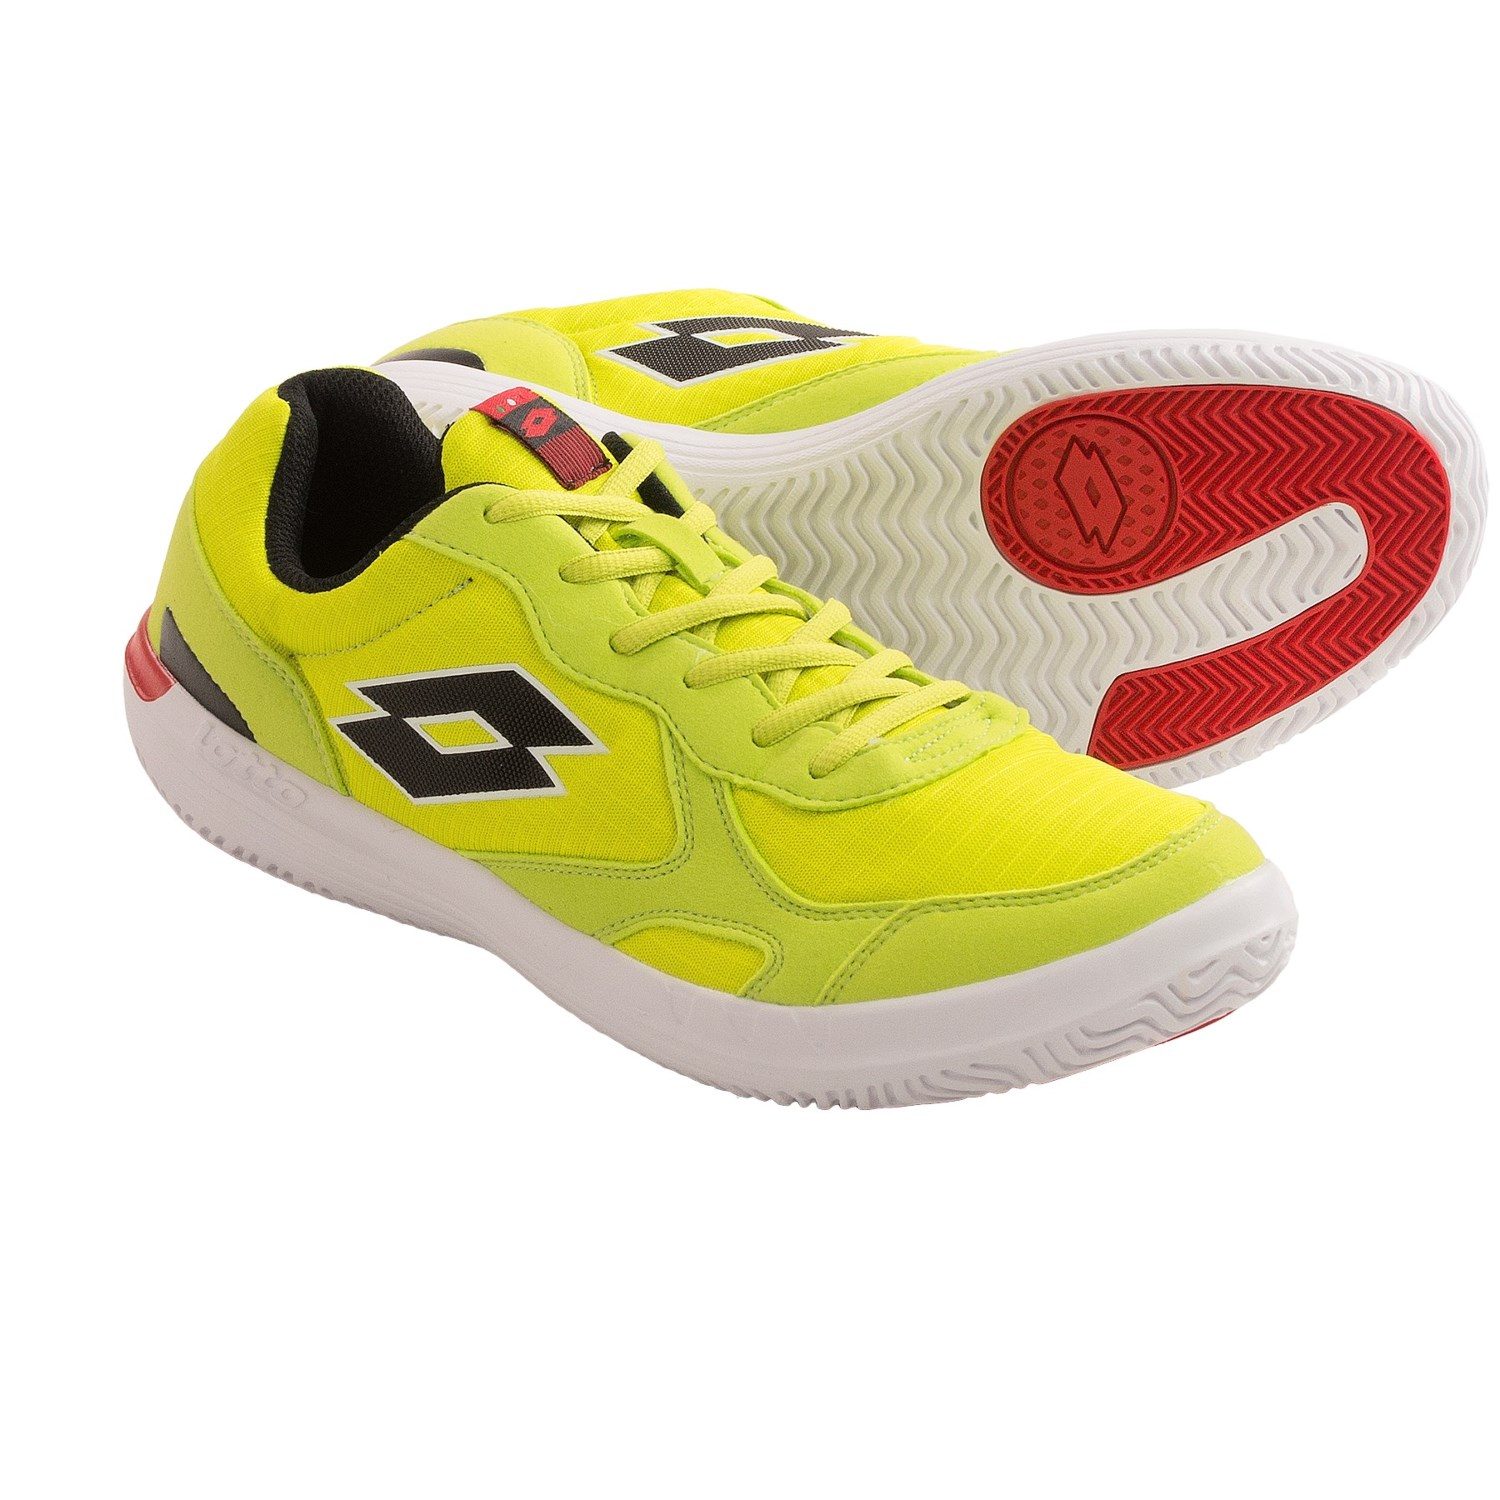 lotto quaranta iv tennis shoes for 9529t save 56